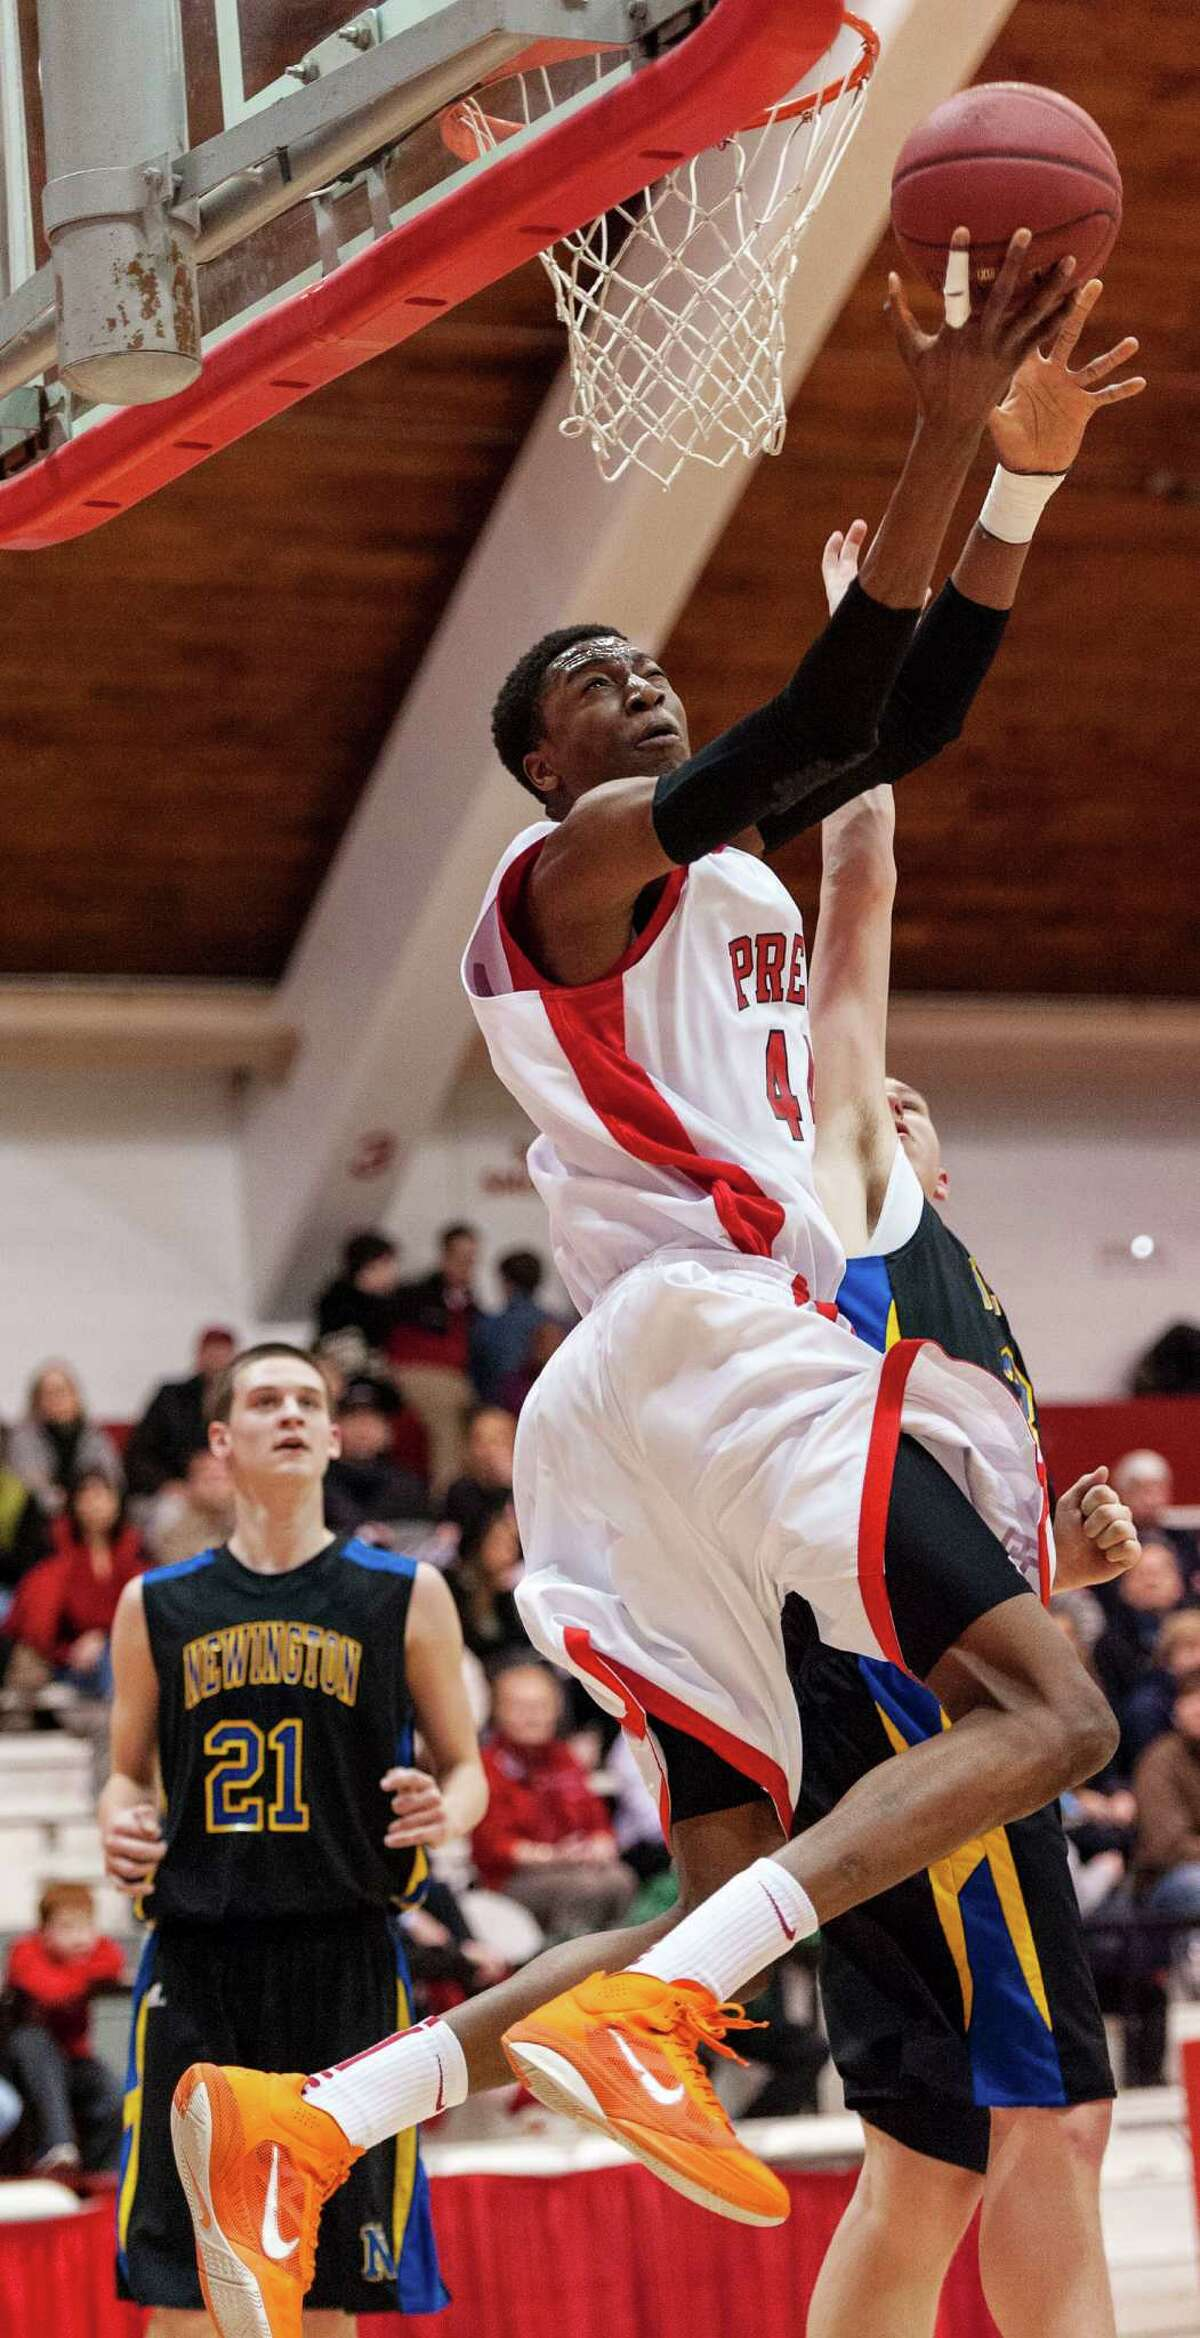 Paschal Chukwu, Fairfield Prep, goes up for a layup during a second round 2013 CIAC class LL boys basketball tournament game against Newington high school held at Alumni Hall, Fairfield University, Fairfield CT on Wednesday March 6th 2013.